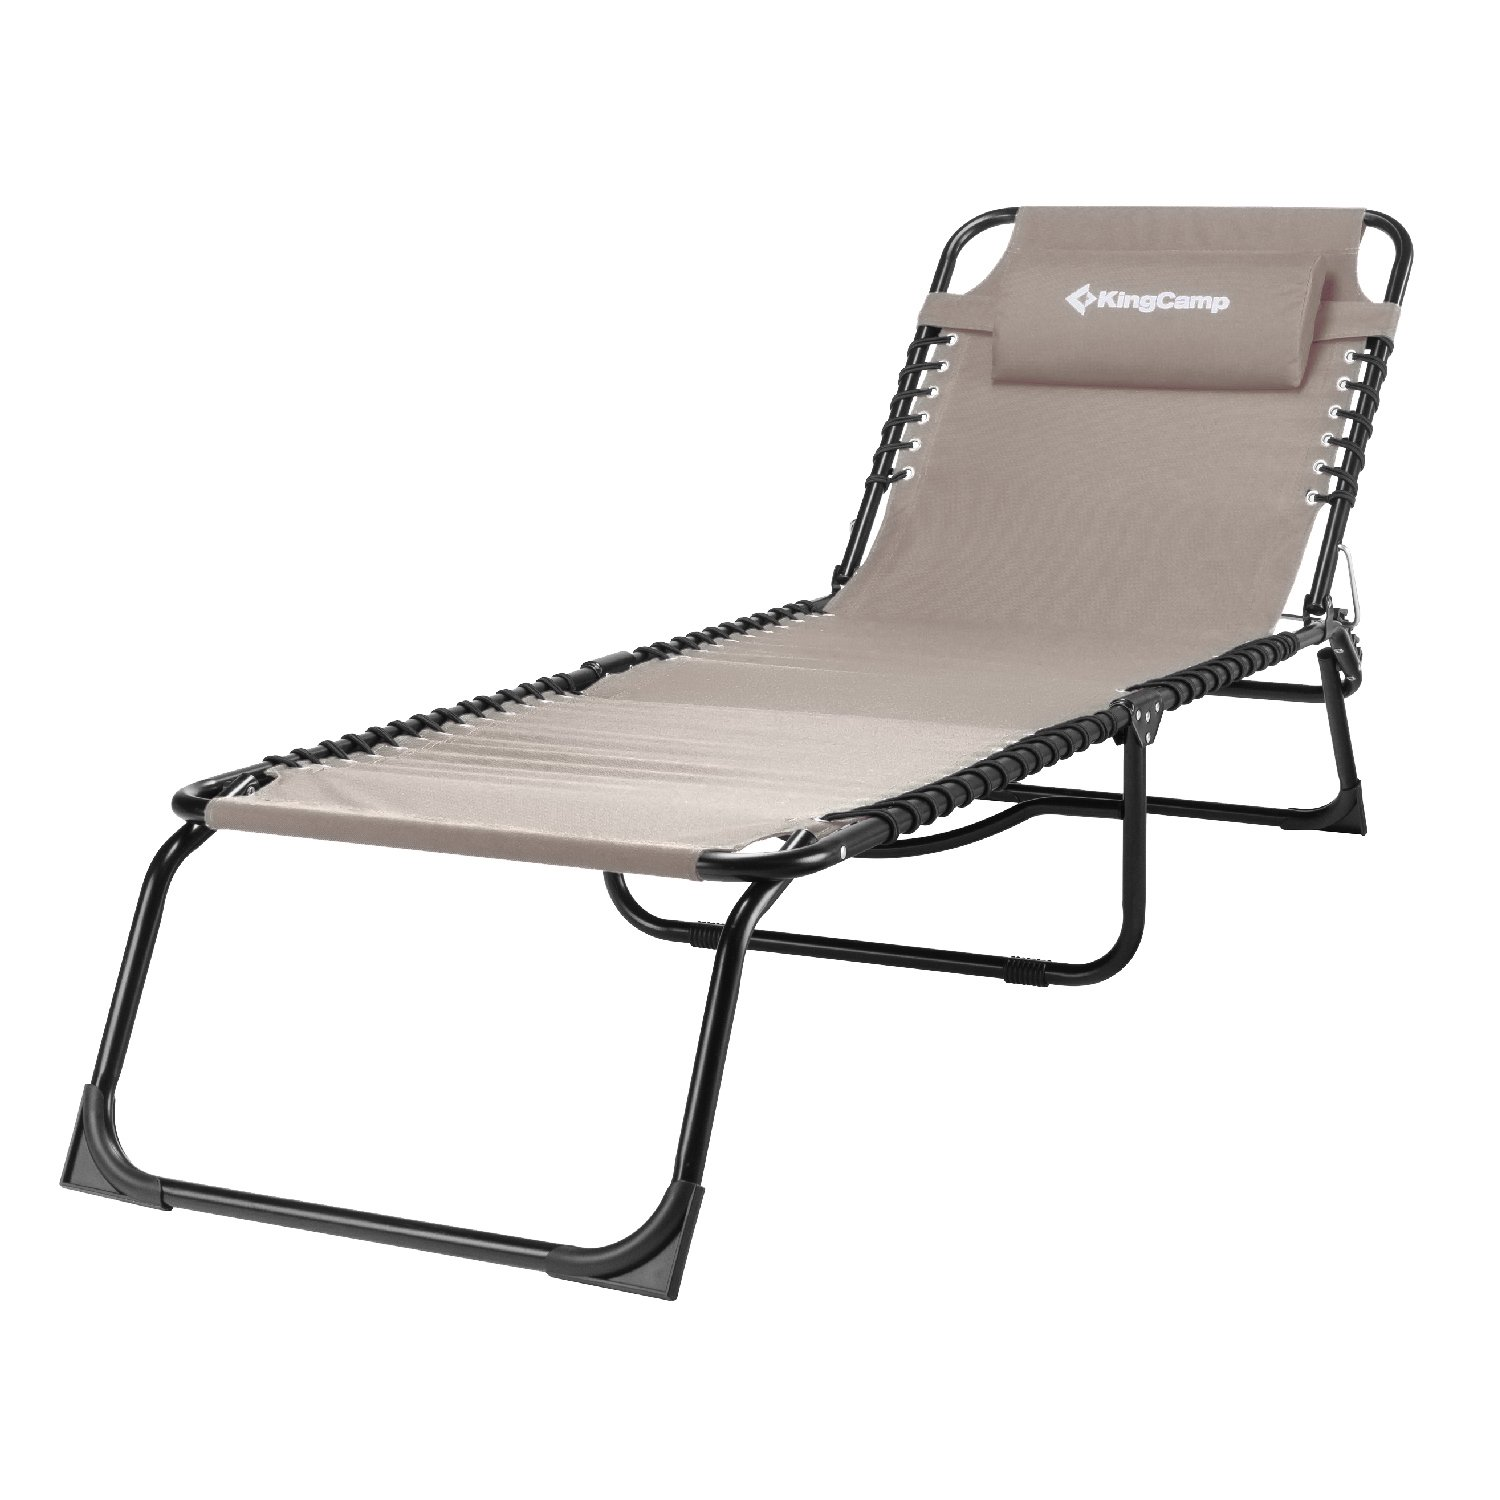 KingCamp Patio Lounge Chair Chaise Bed 3 Adjustable Reclining Positions Steel Frame 600D Oxford Folding Camping Cot with Removable Pillow for Camping Pool Beach Supports 300lbs by KingCamp